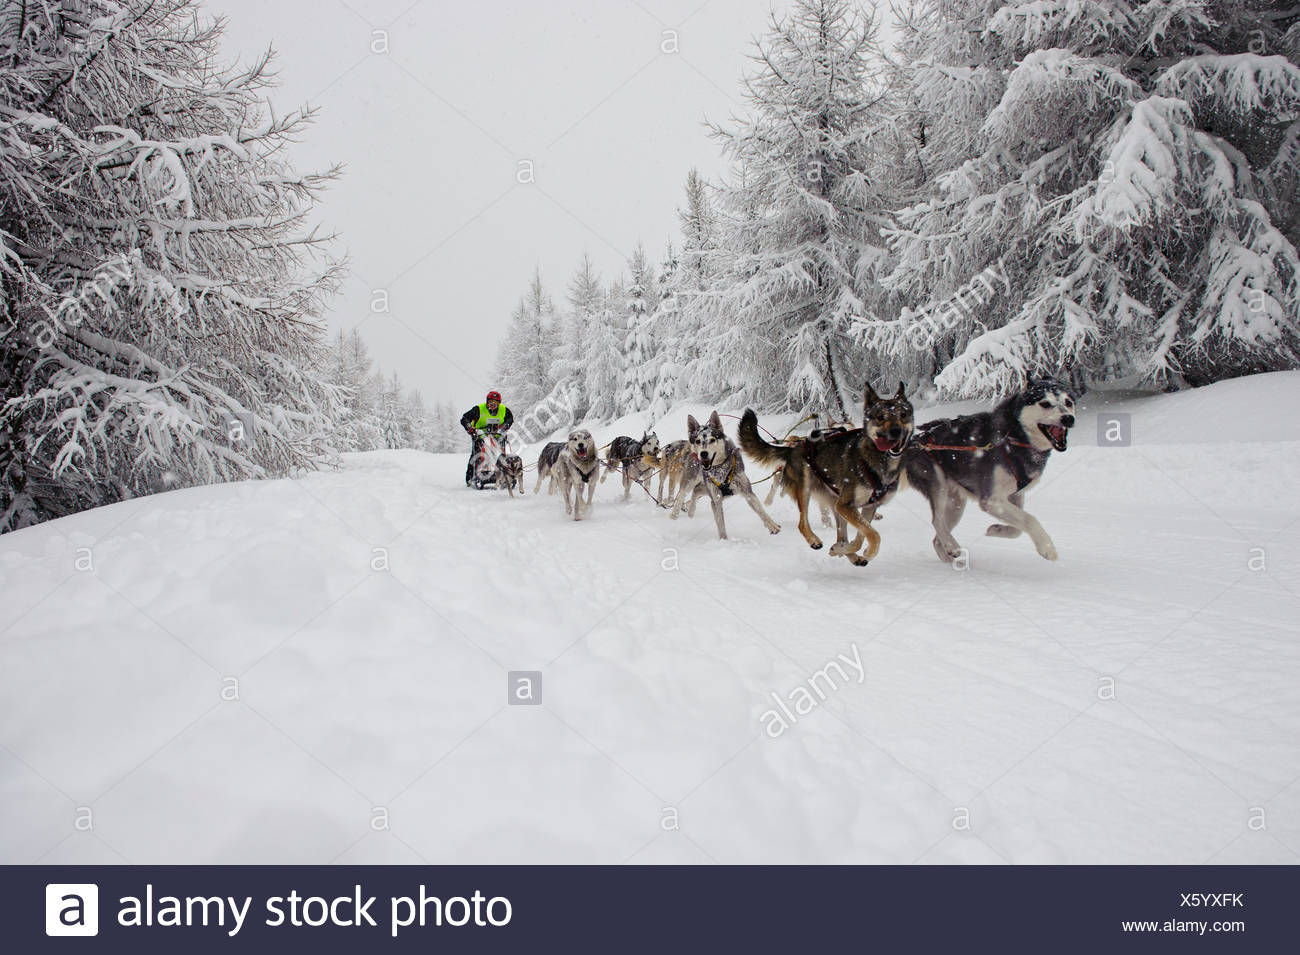 Dog Sled team racing in Jakuszyce, Poland. - Stock Image